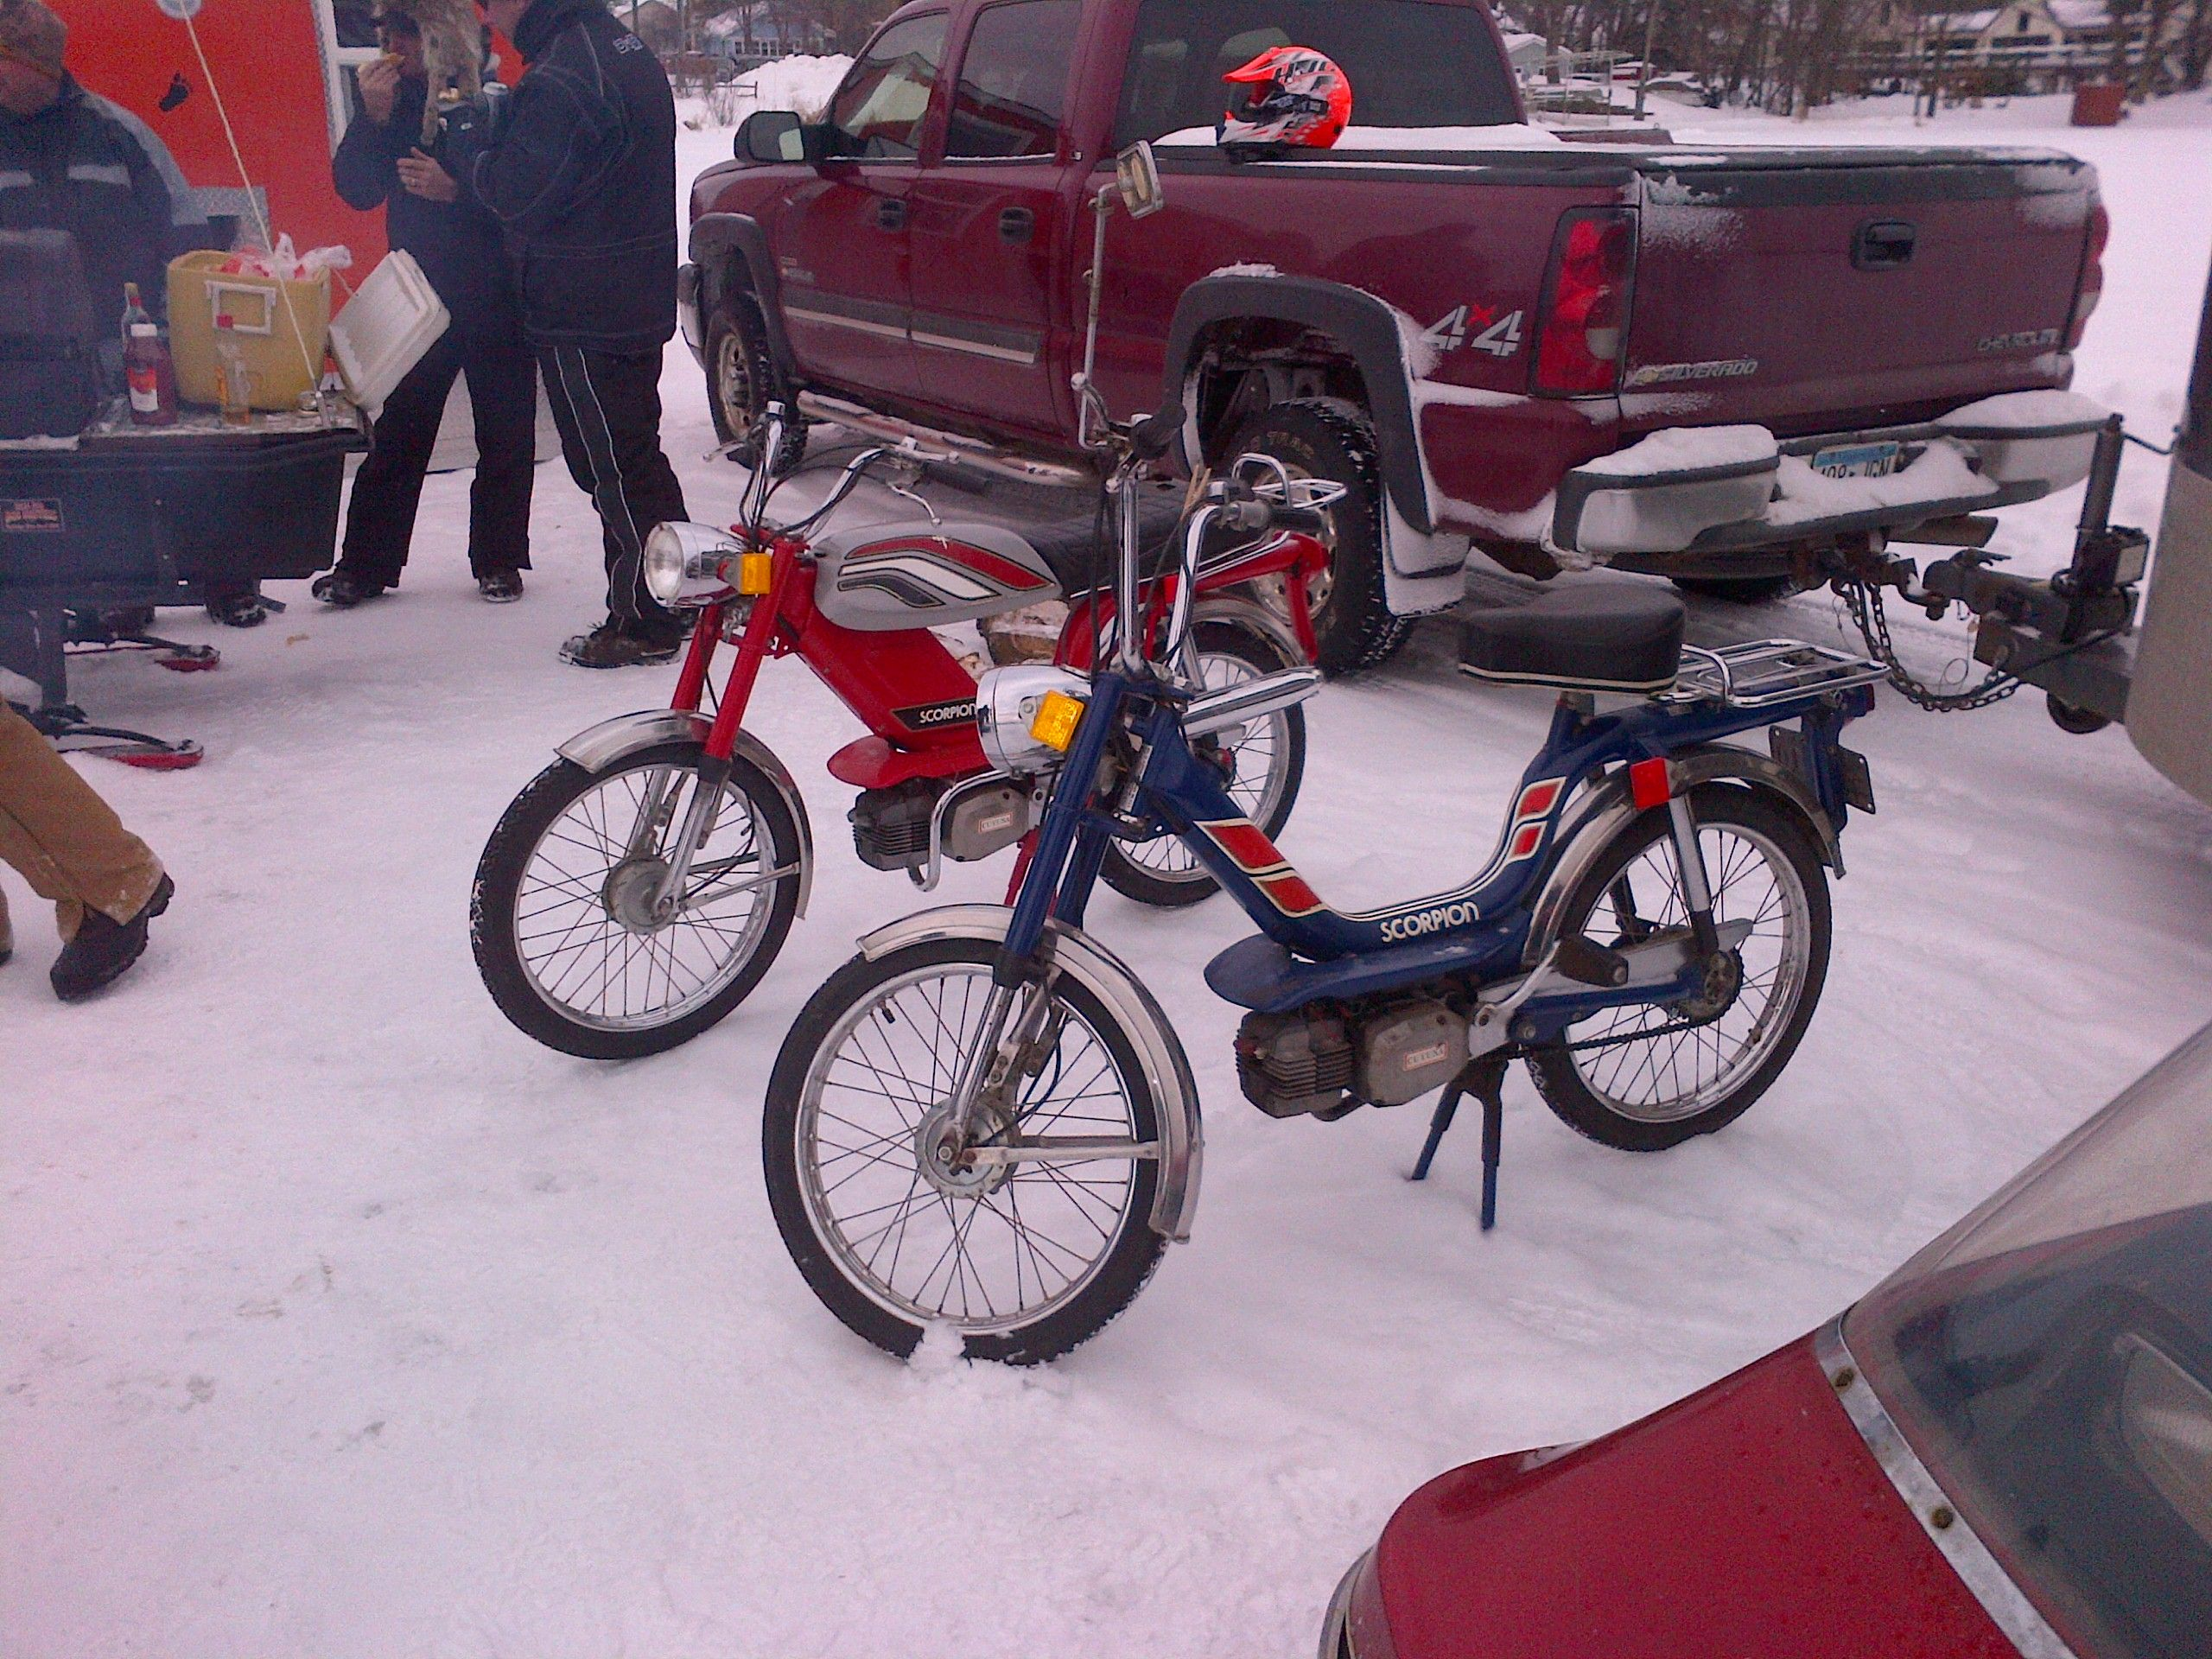 Scorpion Mopeds From The Late 70s Scorpion Snowmobiles Scorpion